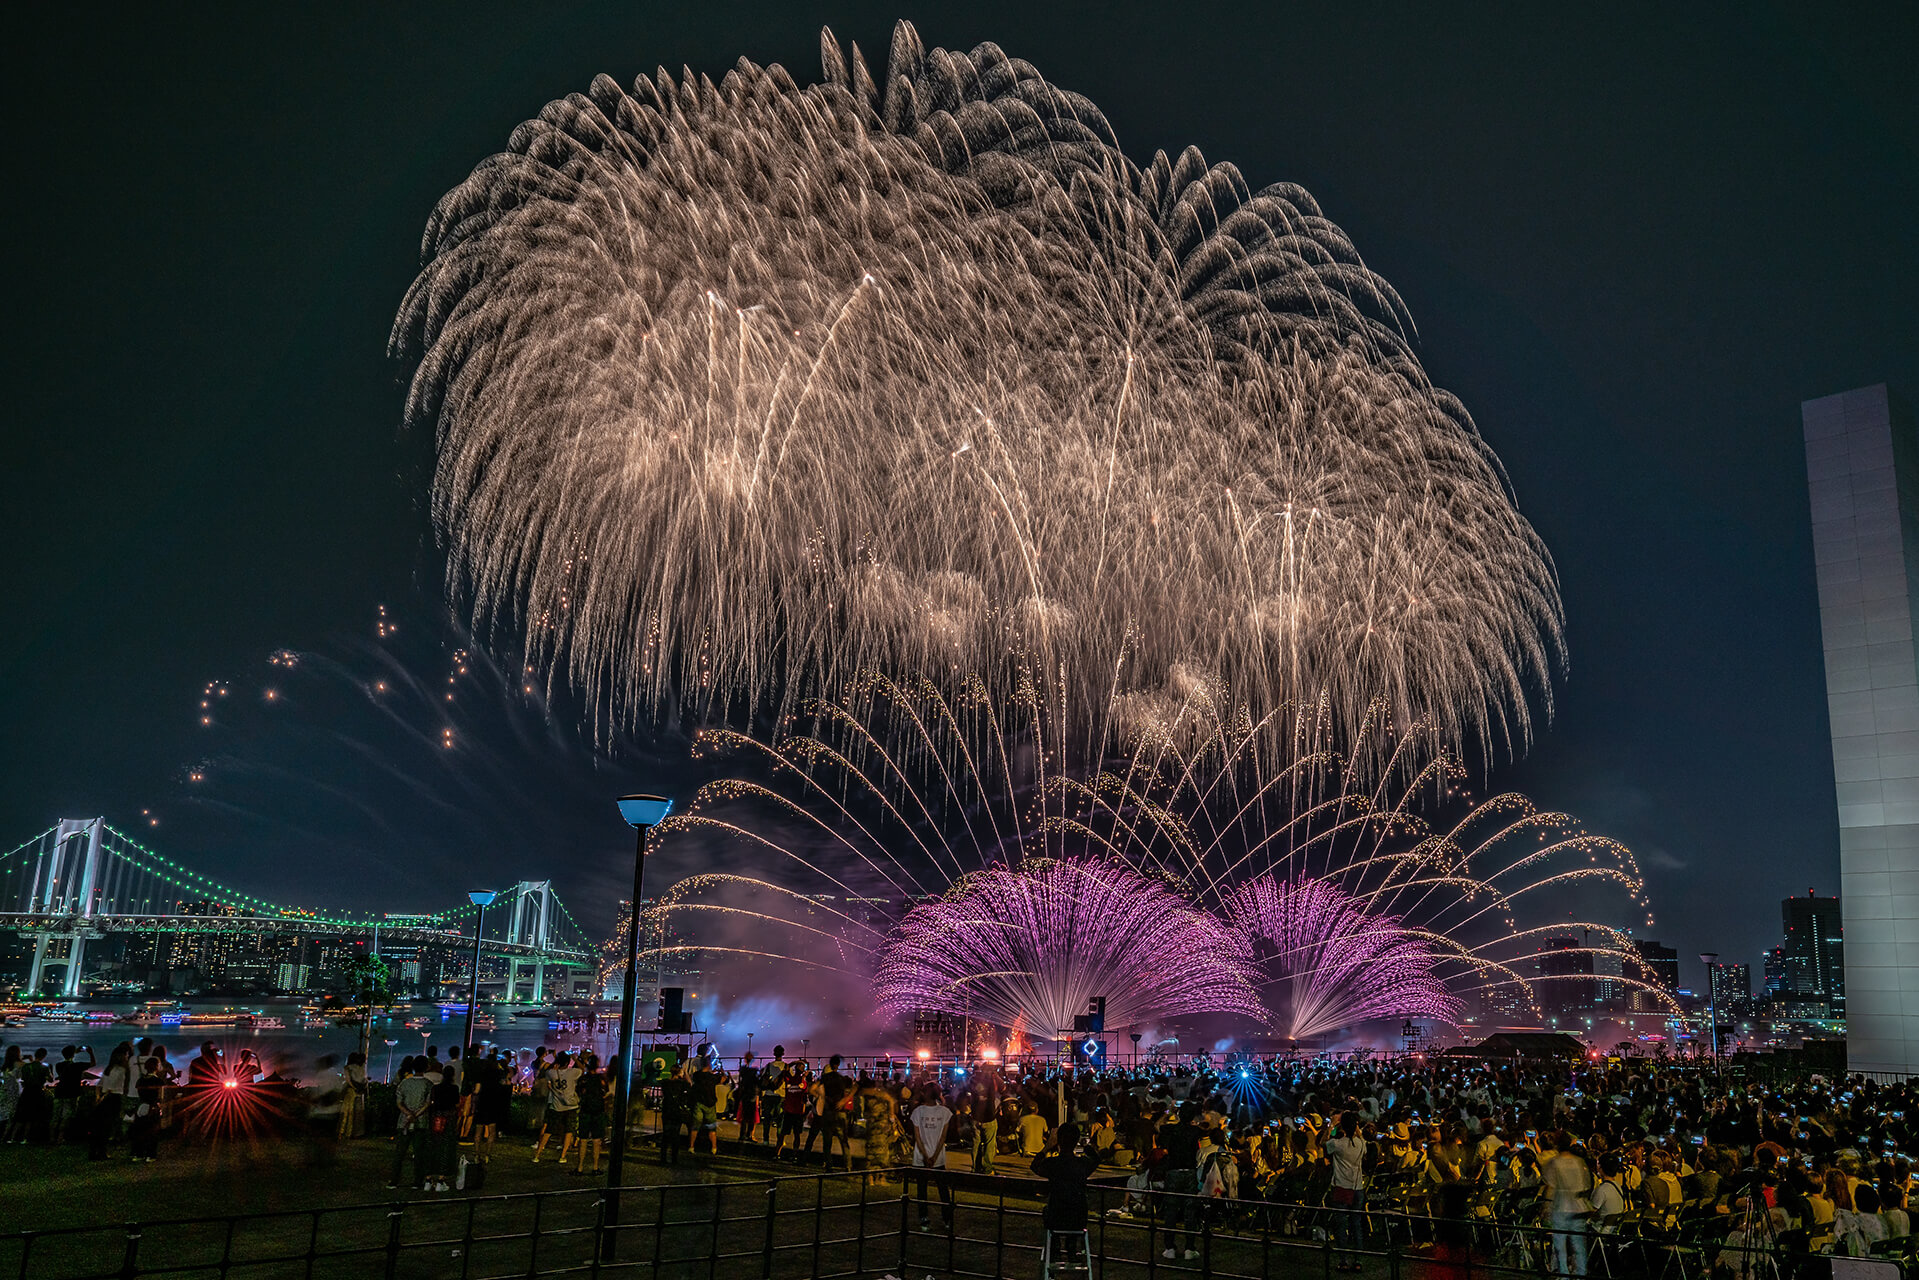 Fireworks lights up the night view of Tokyo